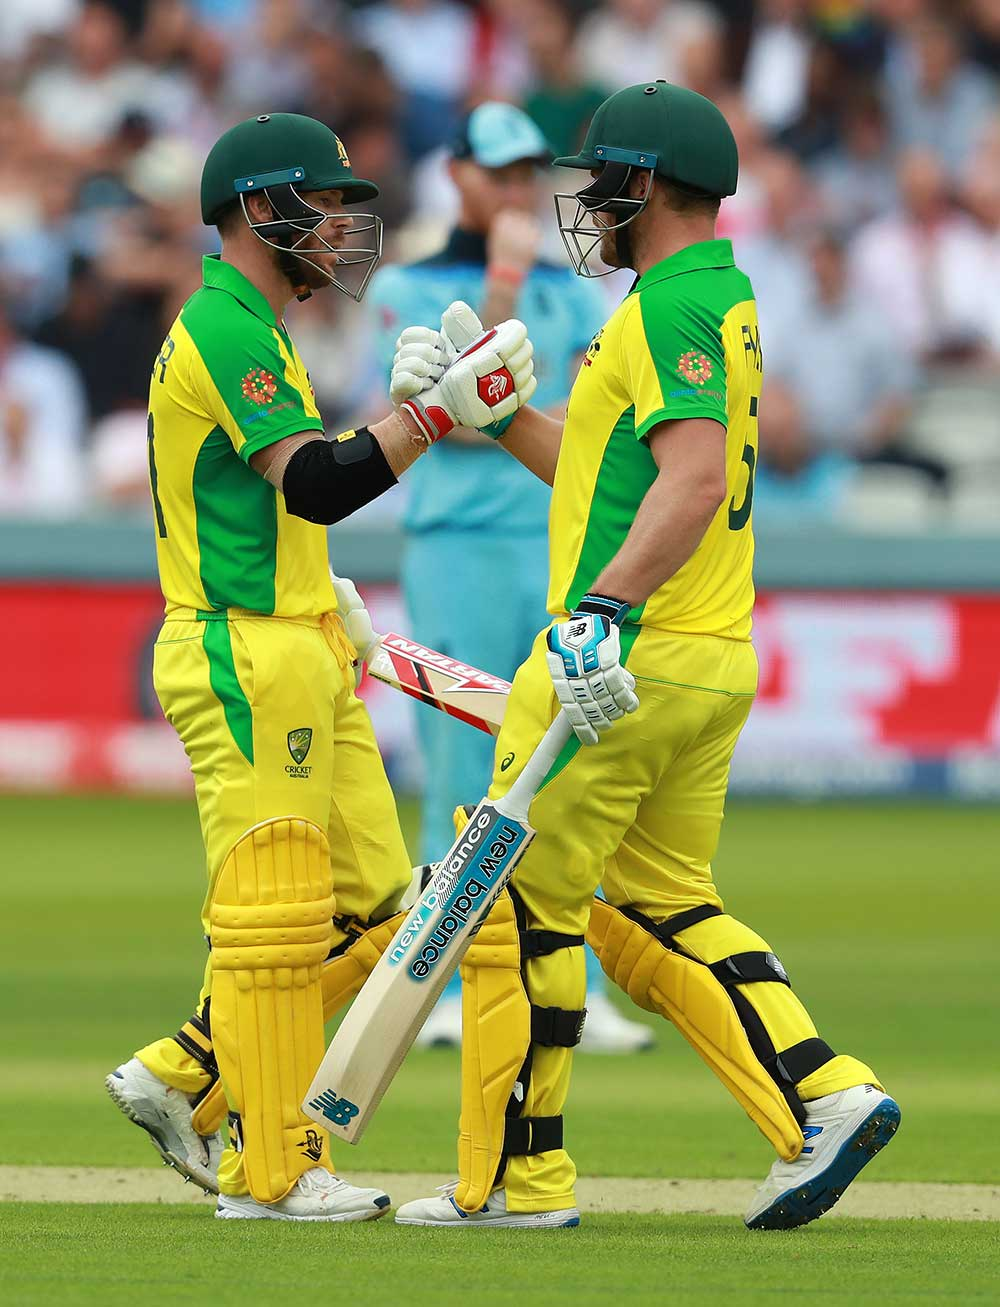 Warner and Finch put on 123 in 22.4 overs // Getty